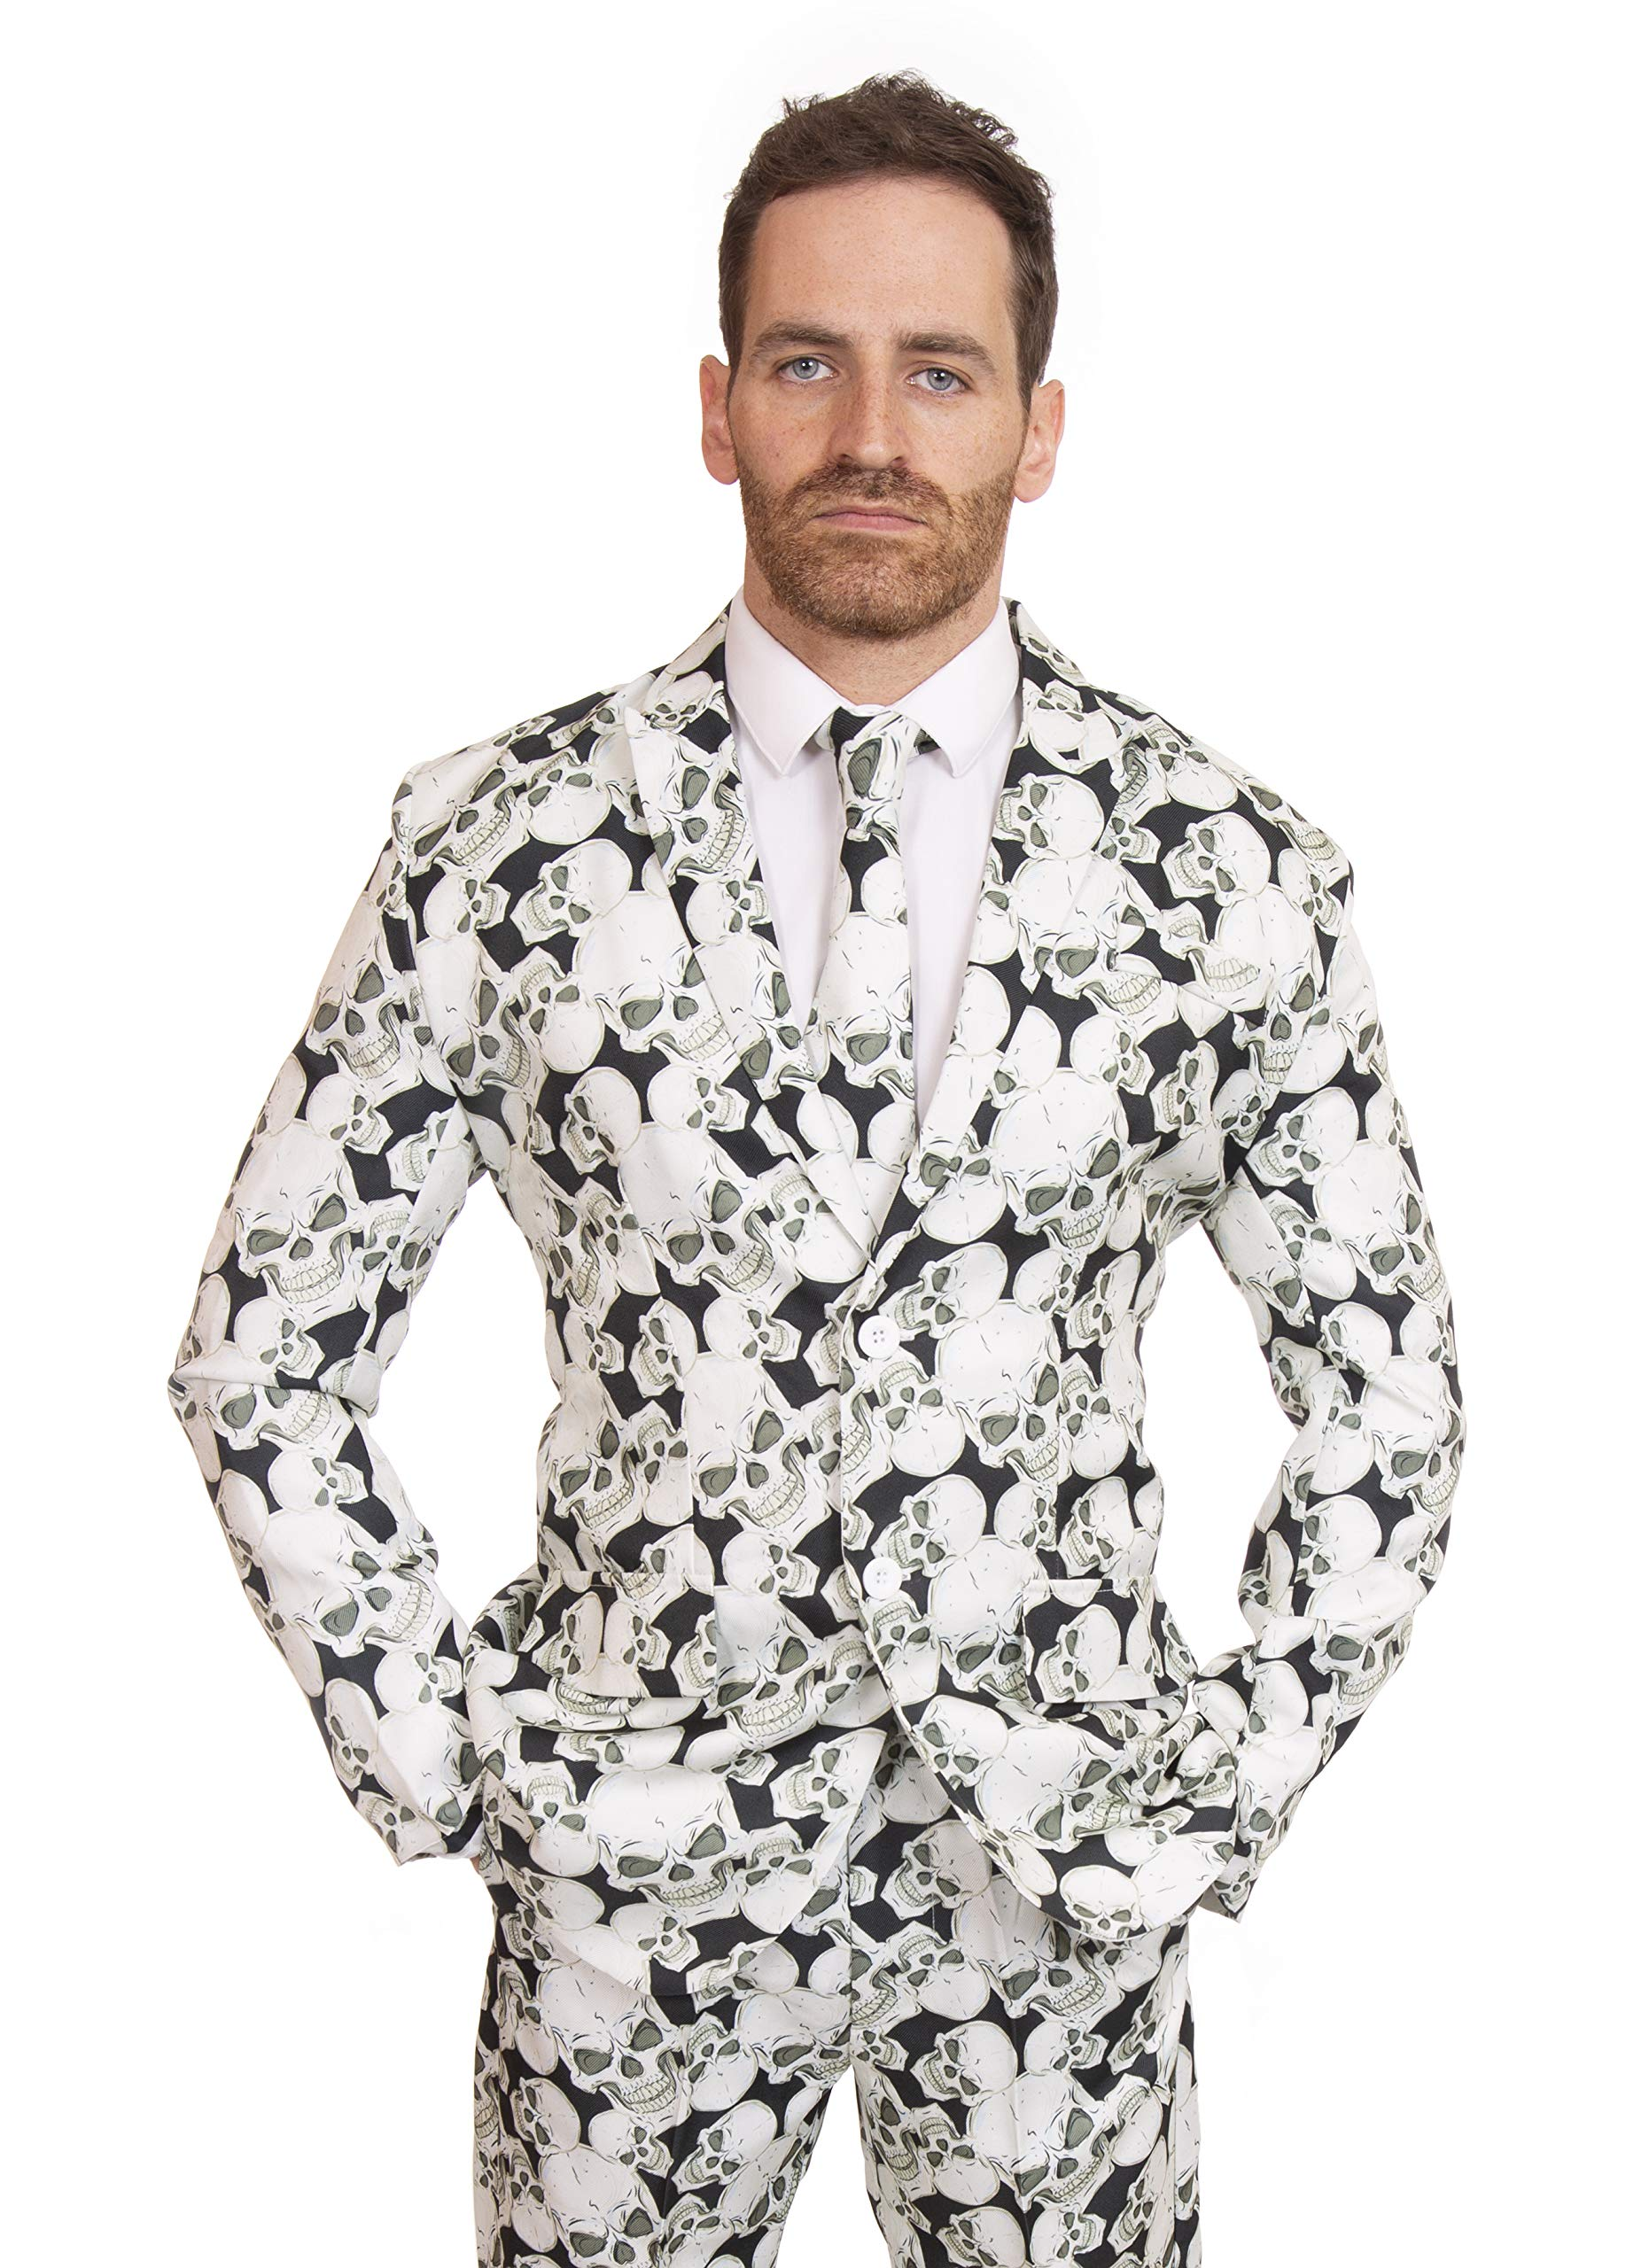 Stag Suits Black White Halloween Skull Print (44'' - 46'' Chest) by Stag Suits